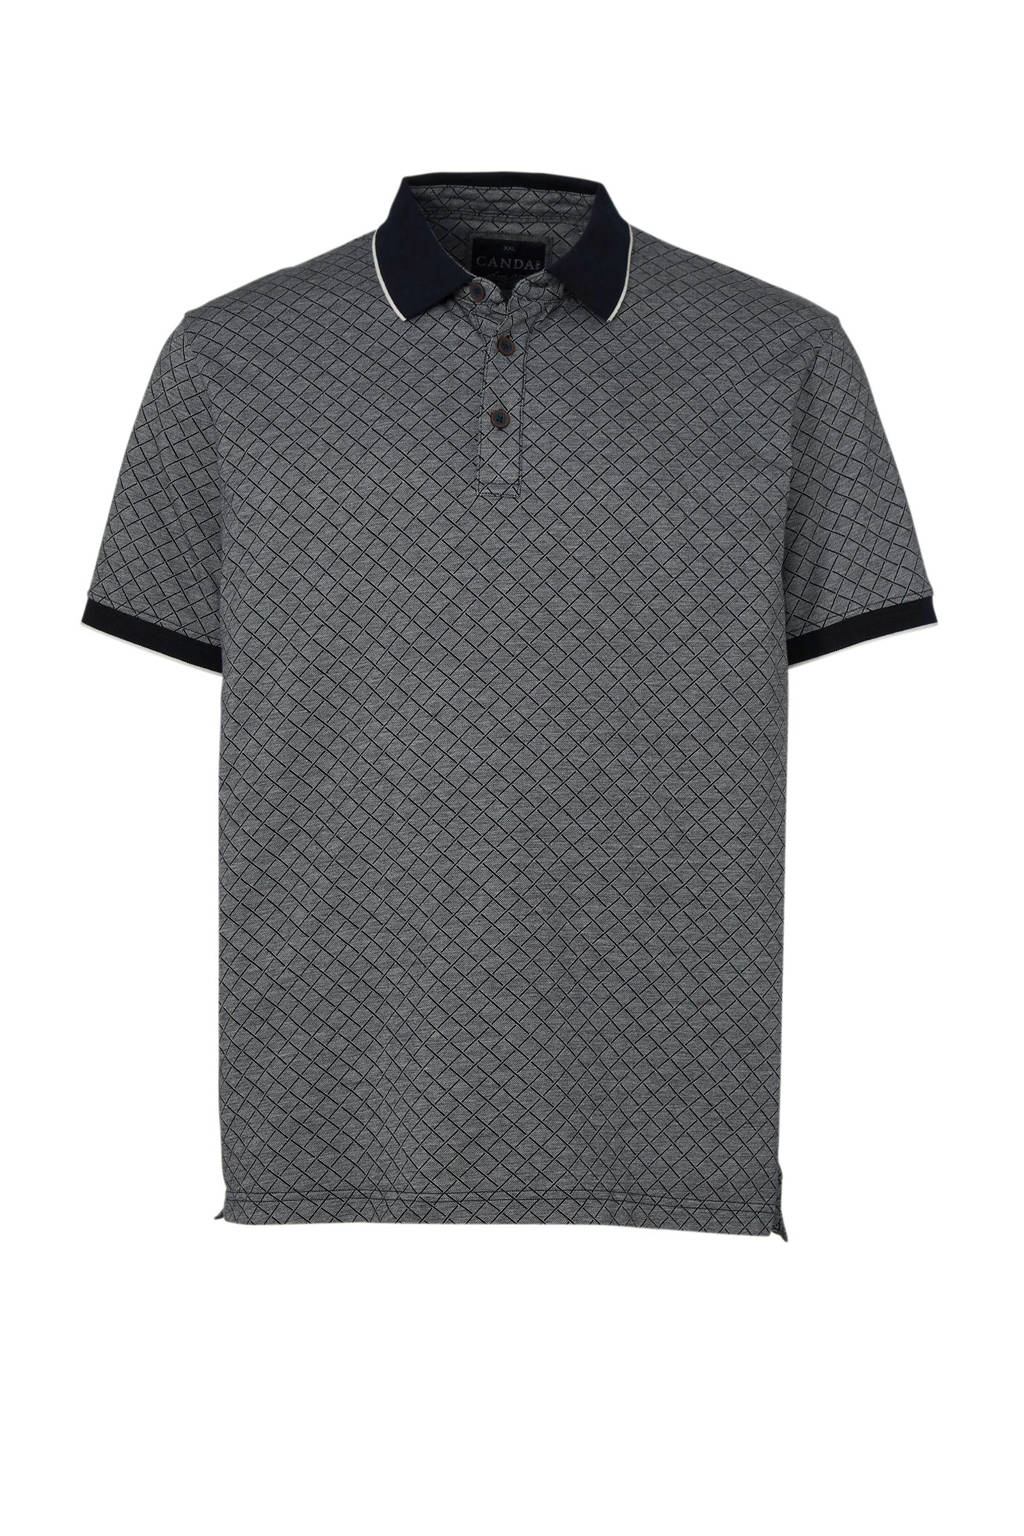 C&A XL Canda polo met all over print, Blauw